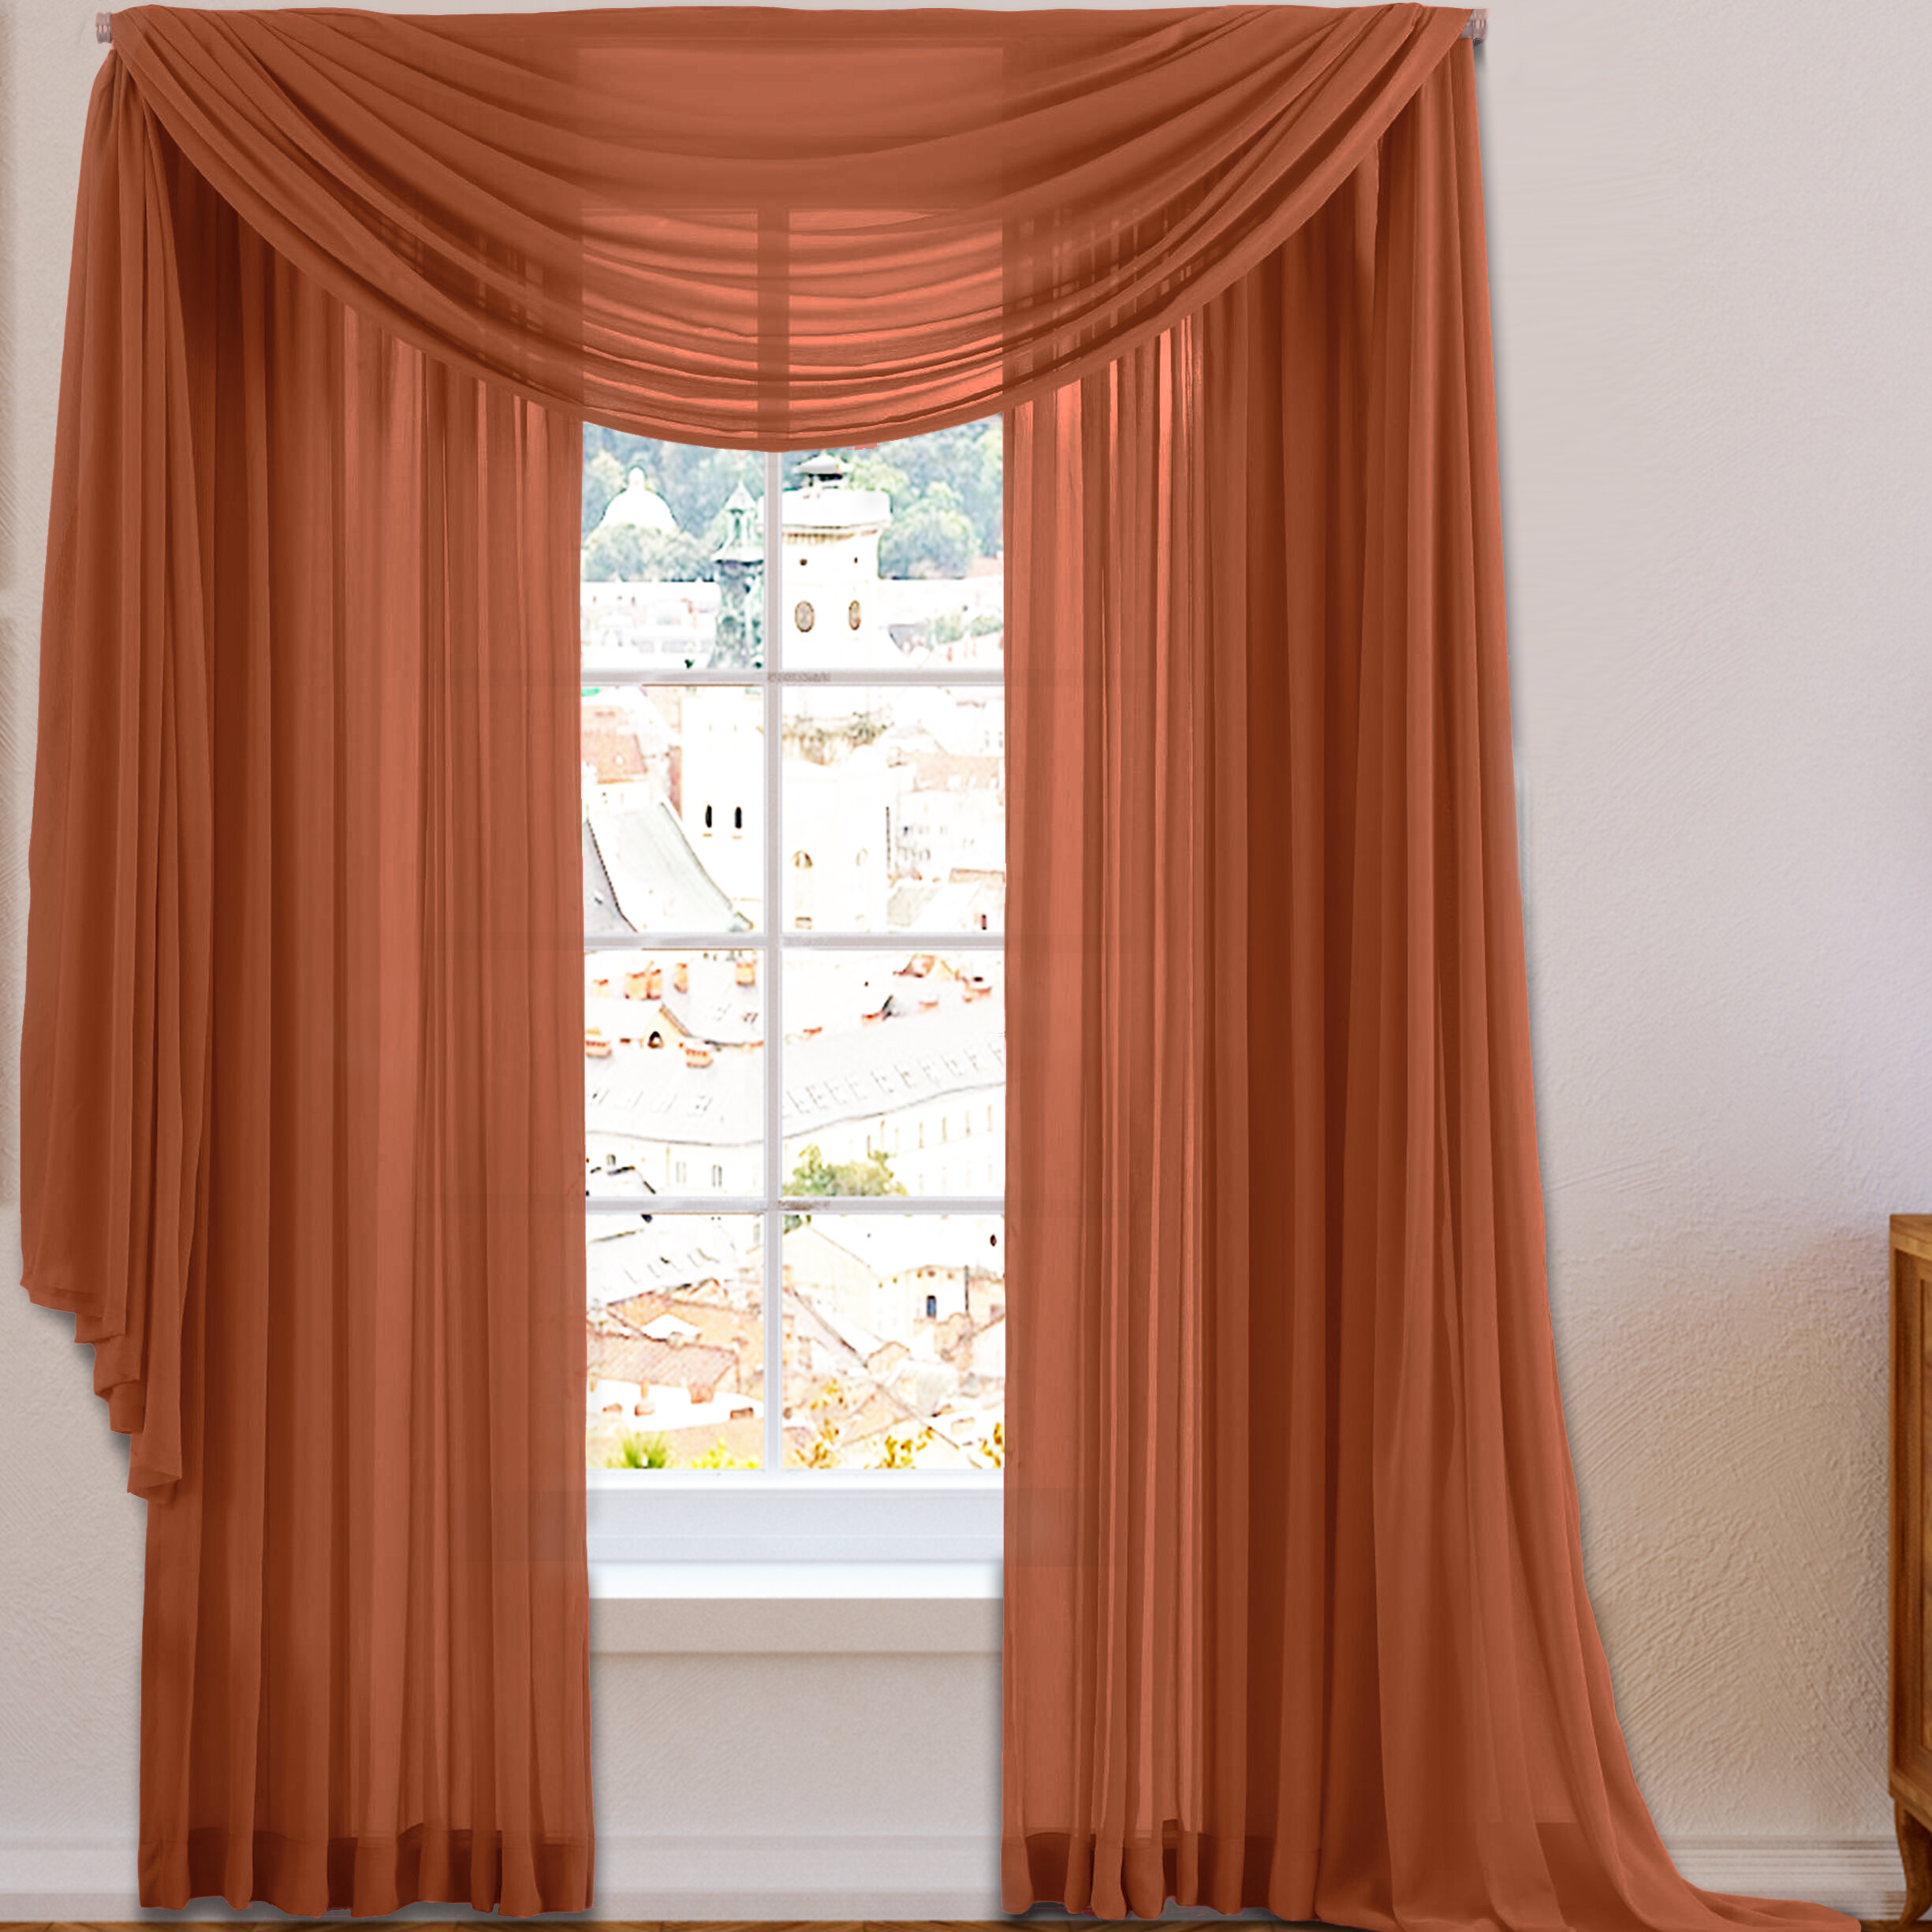 voile silk panel curtain sheer pin lavender living ombre curtains grape room set gradient